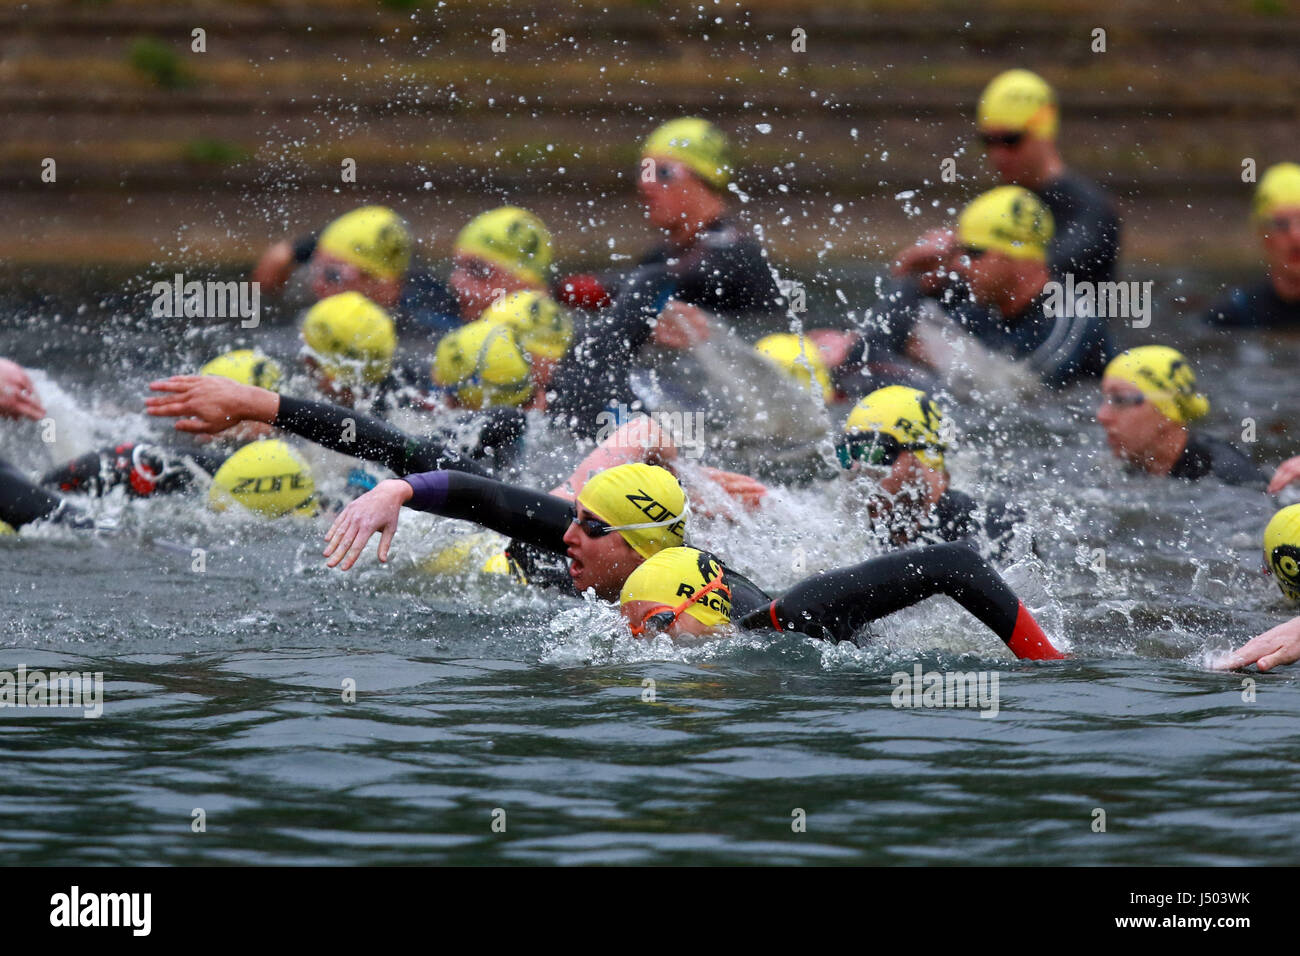 Peterborough, Cambridgeshire, UK. 13th May, 2017. Competitors in the Monster Mojito Triathlon start the race swimming - Stock Image